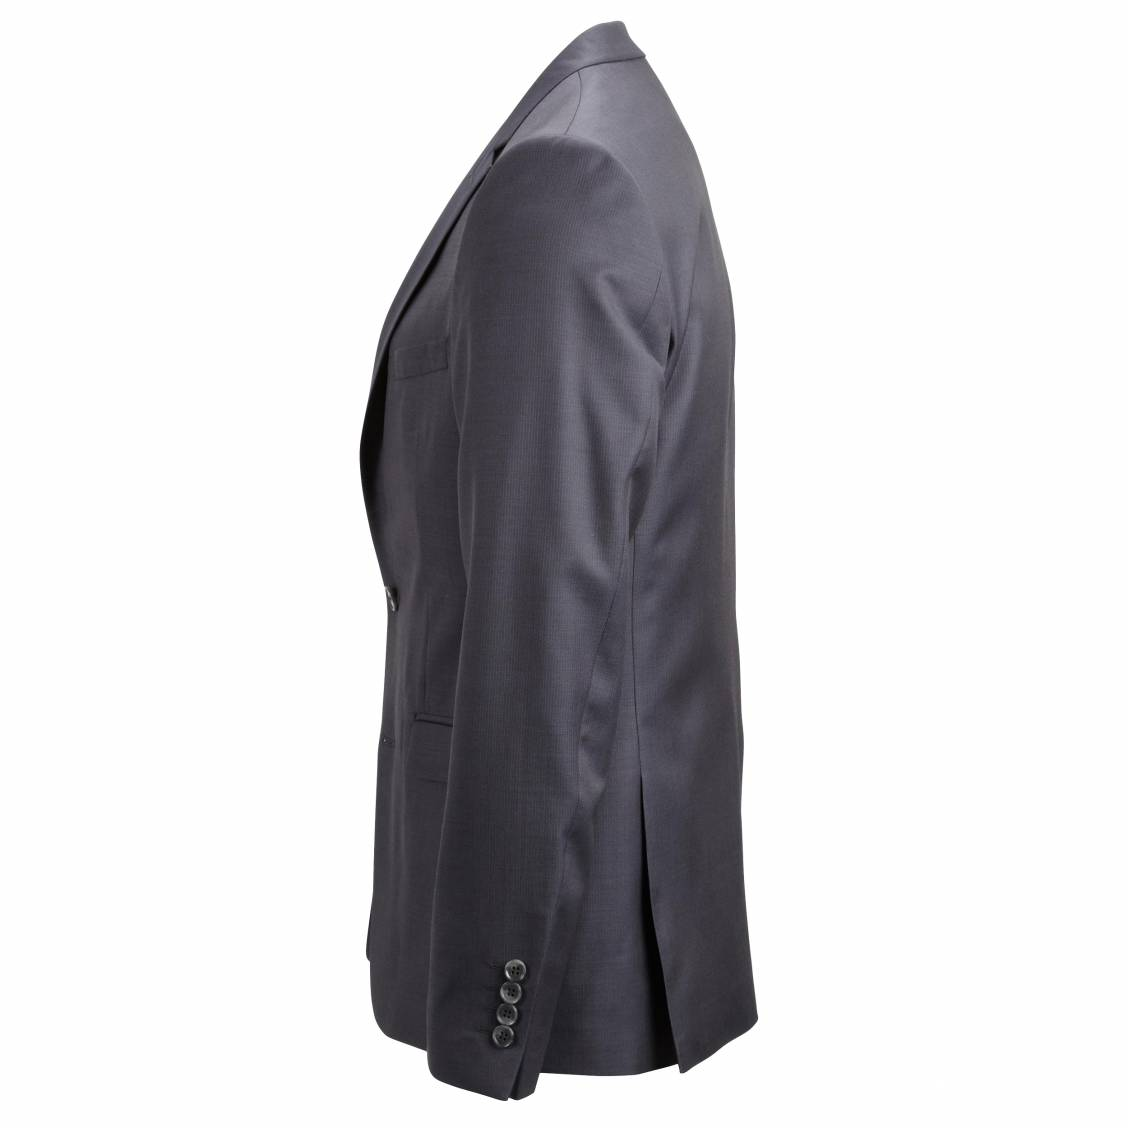 Veste de costume Selected en laine anthracite